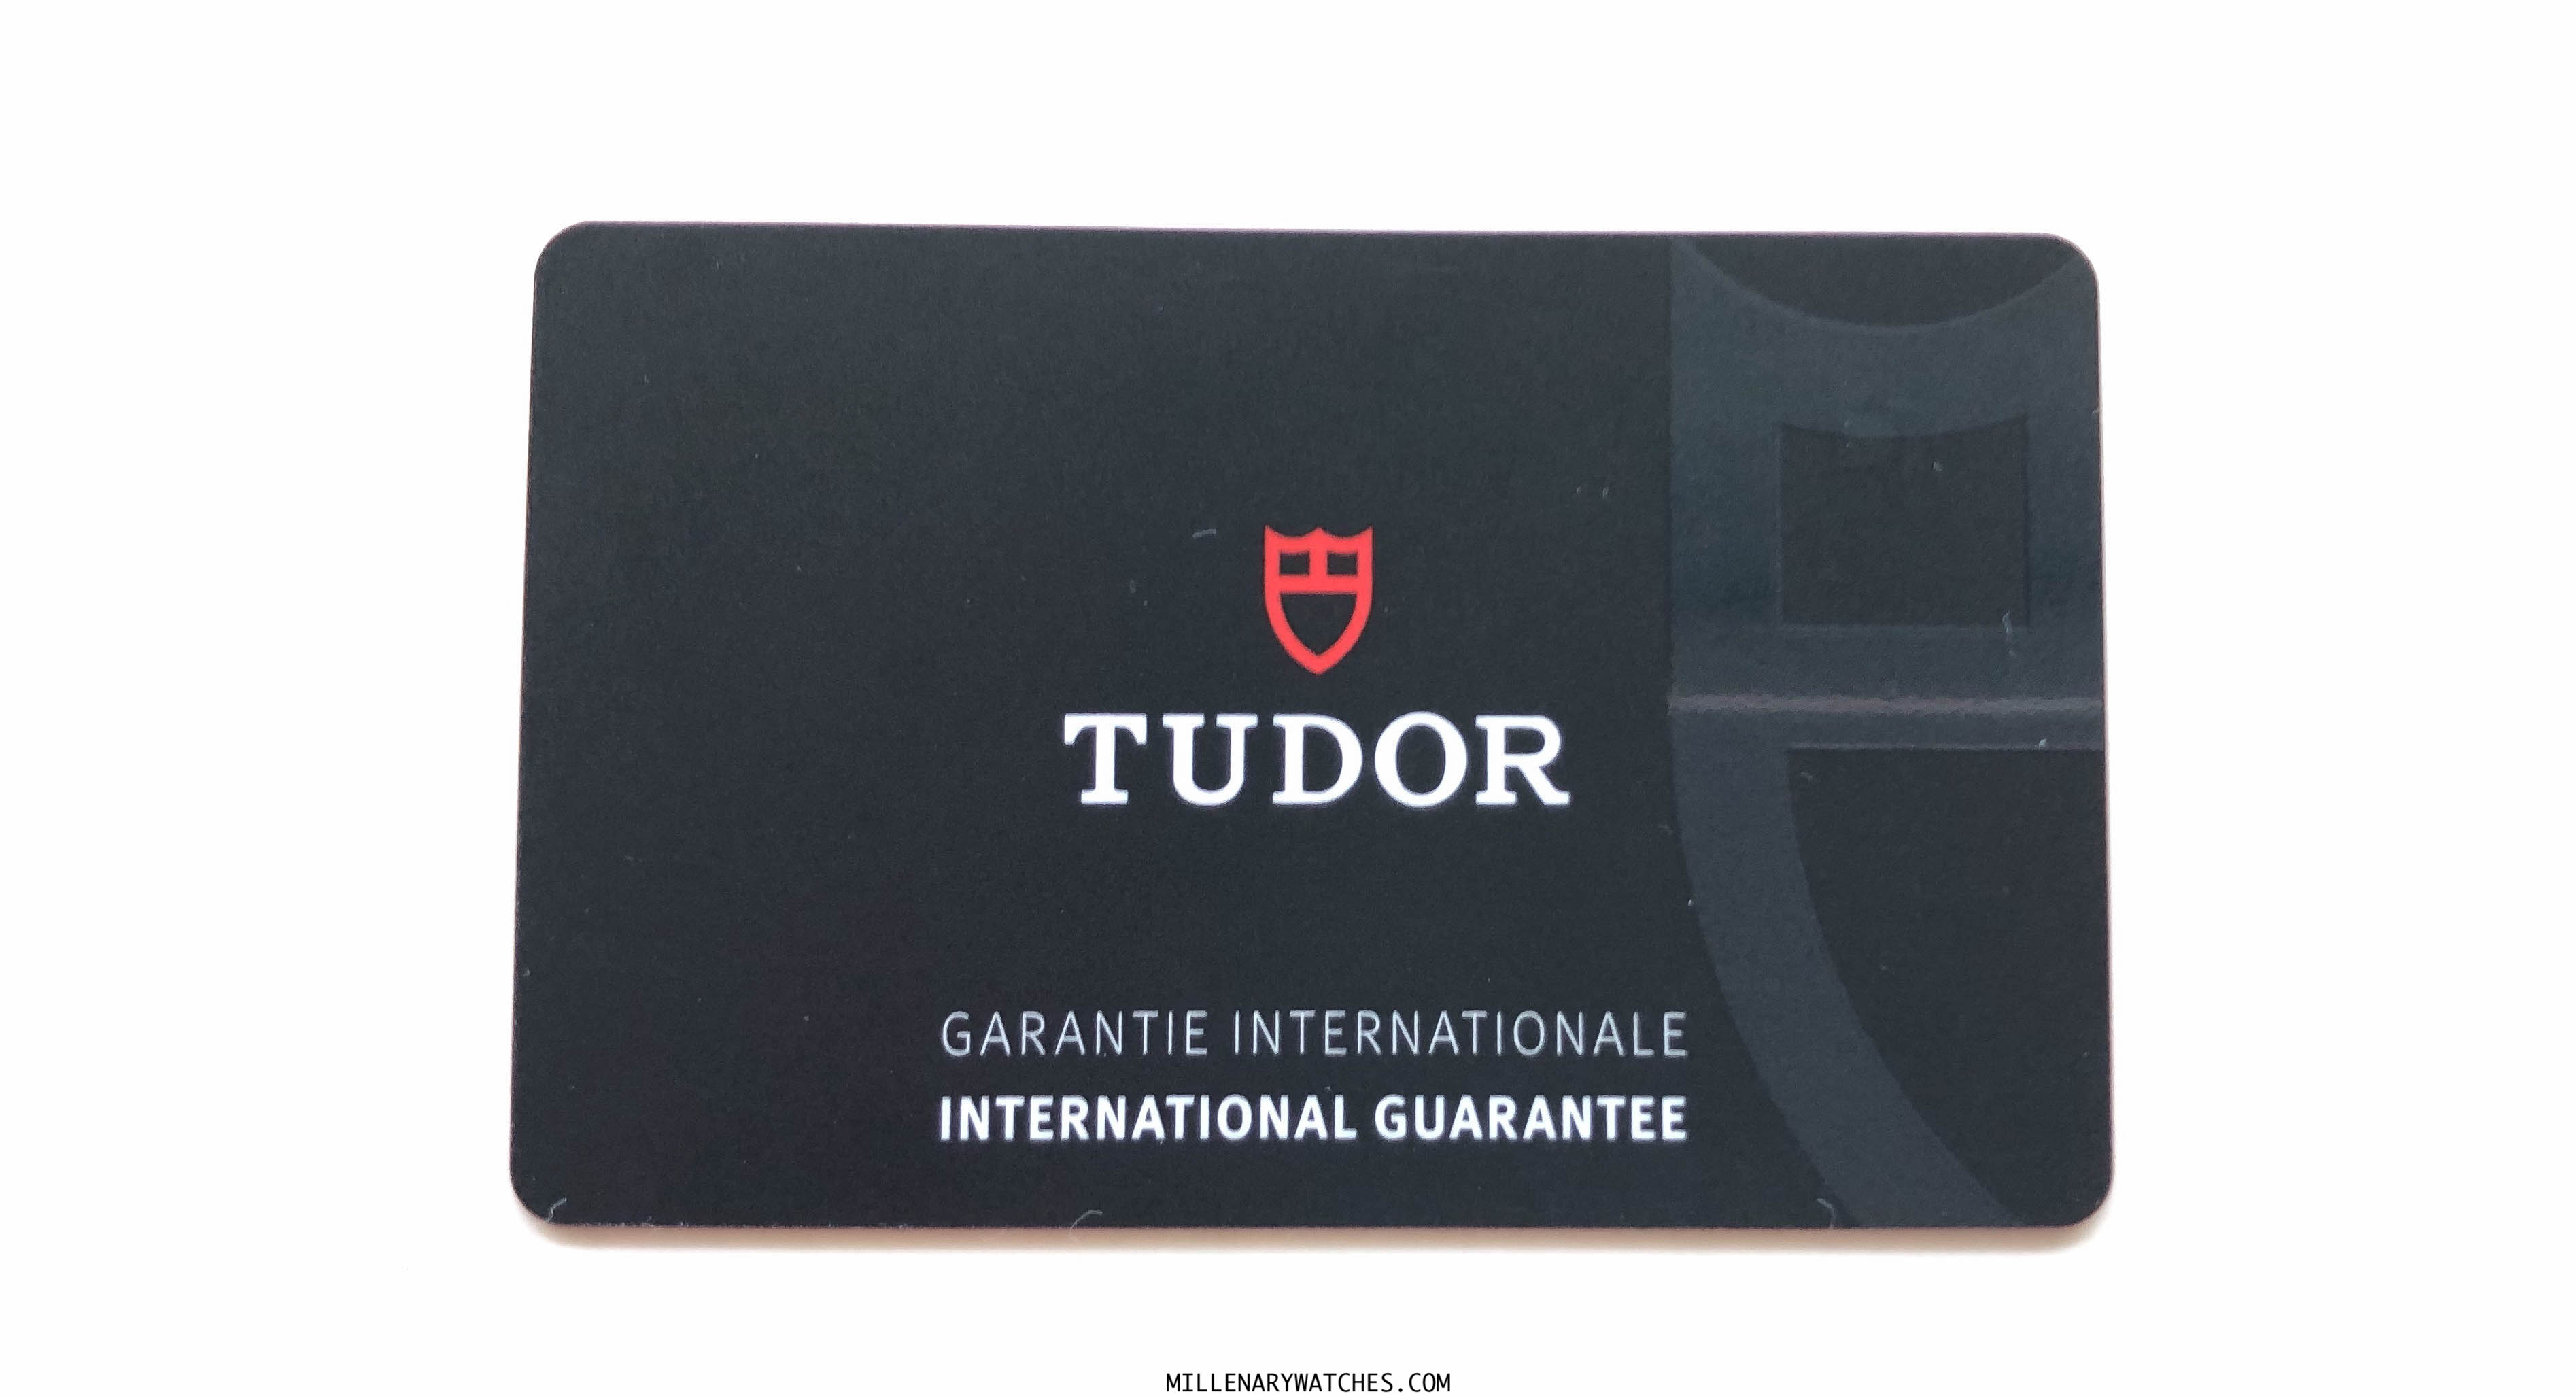 New Tudor Warranty card 2020